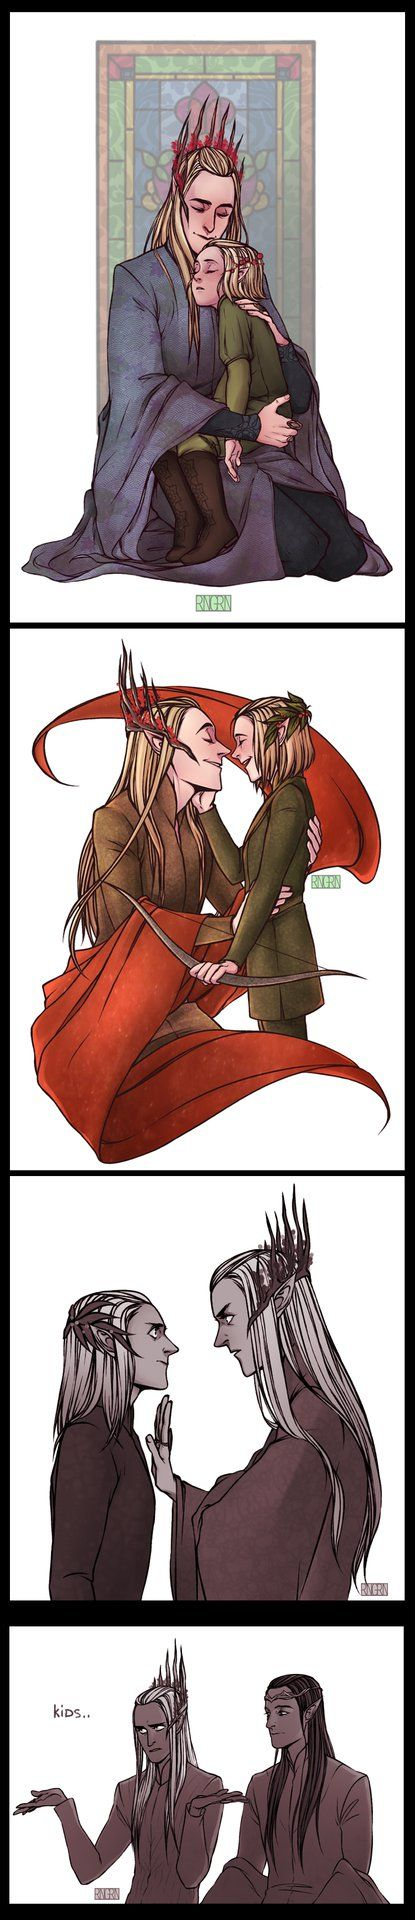 father and son and a little bit of Elrond by RinGreen on deviantART